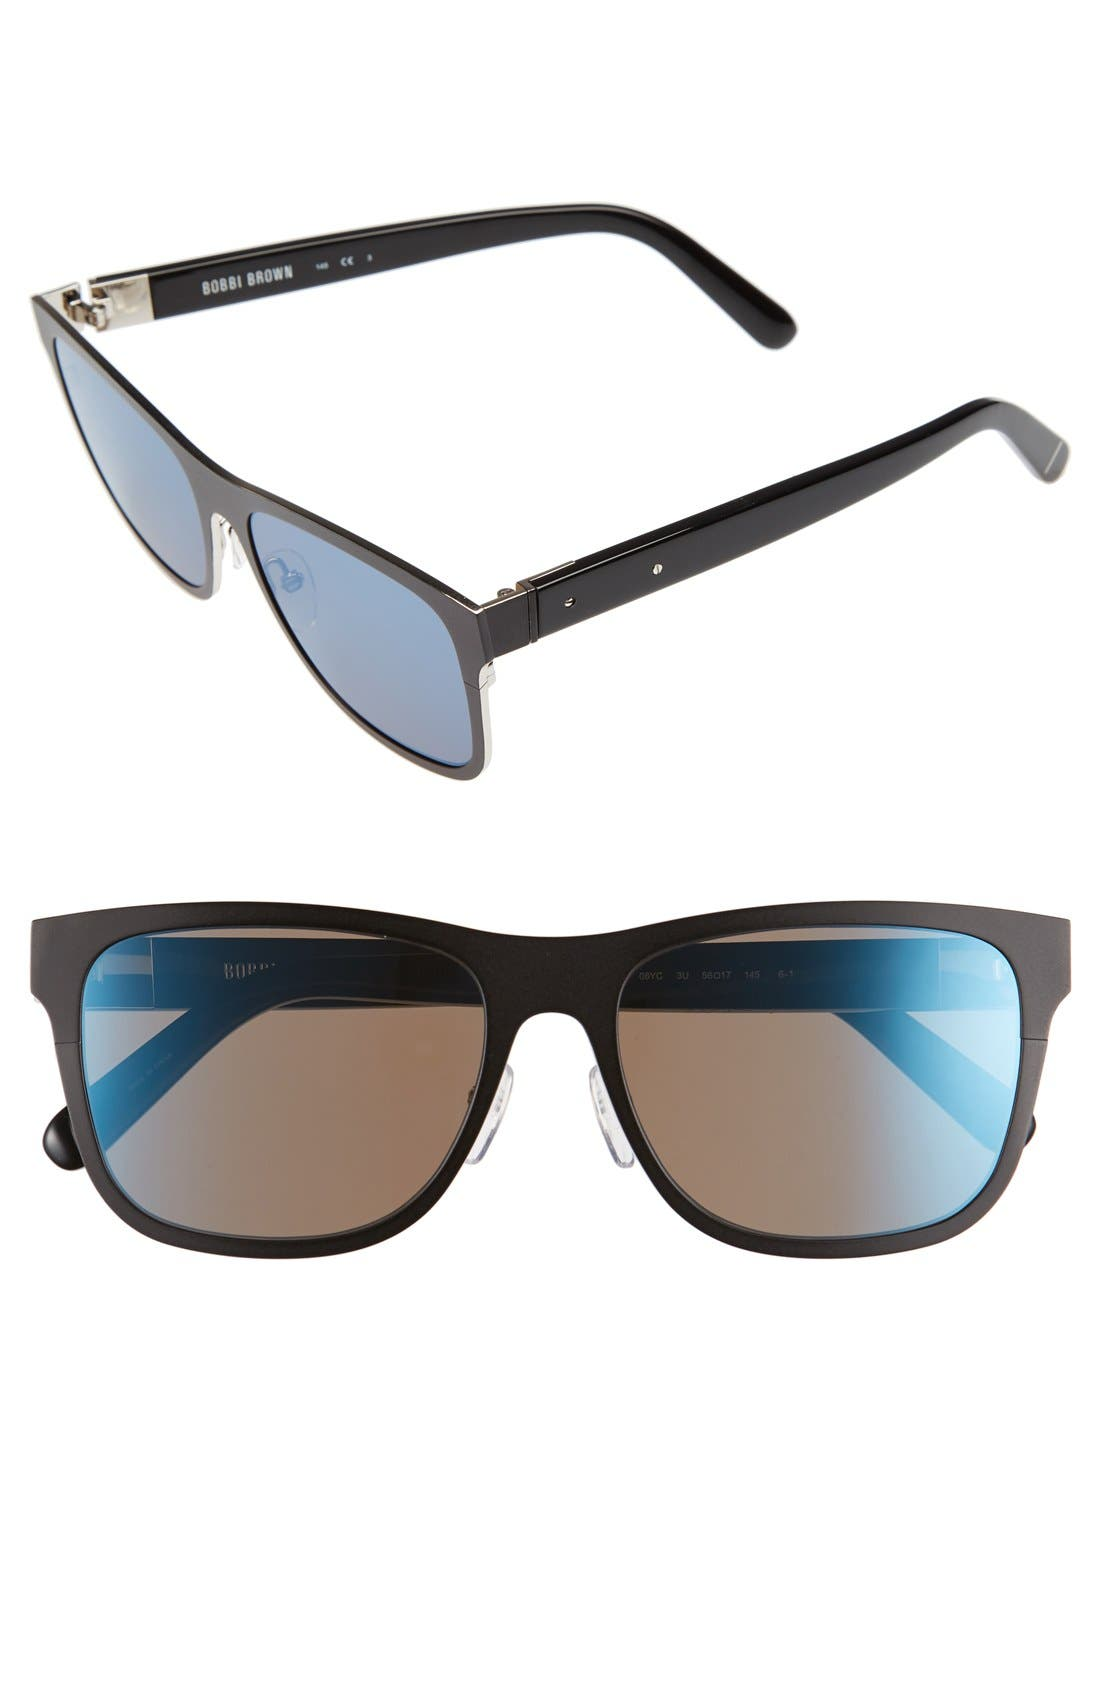 Main Image - Bobbi Brown 'The Zach' 56mm Retro Sunglasses